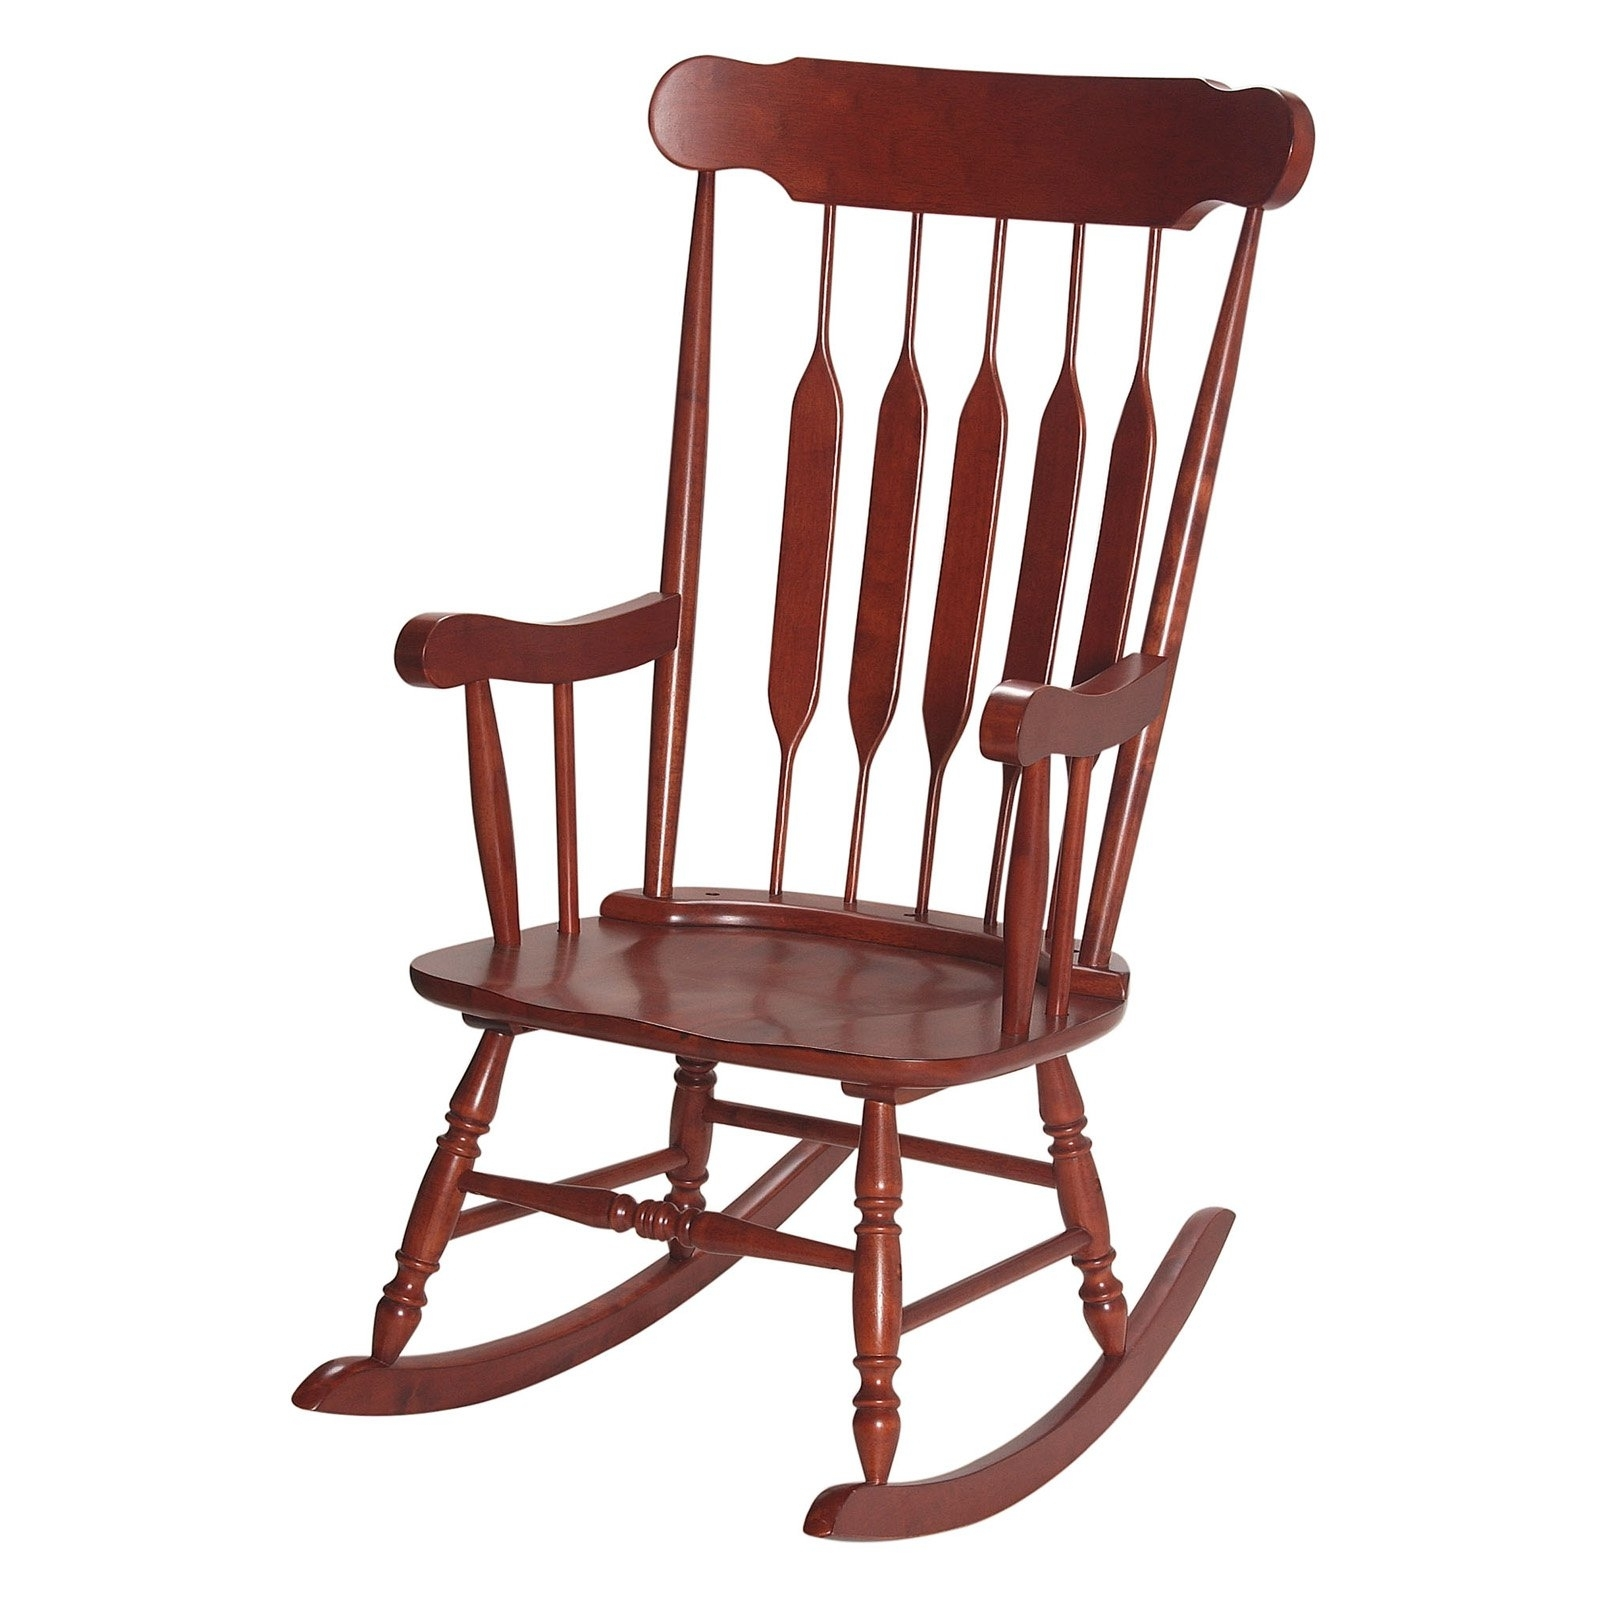 Rocking Chairs For Adults With Recent Gift Mark Mission Style Wooden Rocking Chair With Upholstered Seat (View 13 of 15)